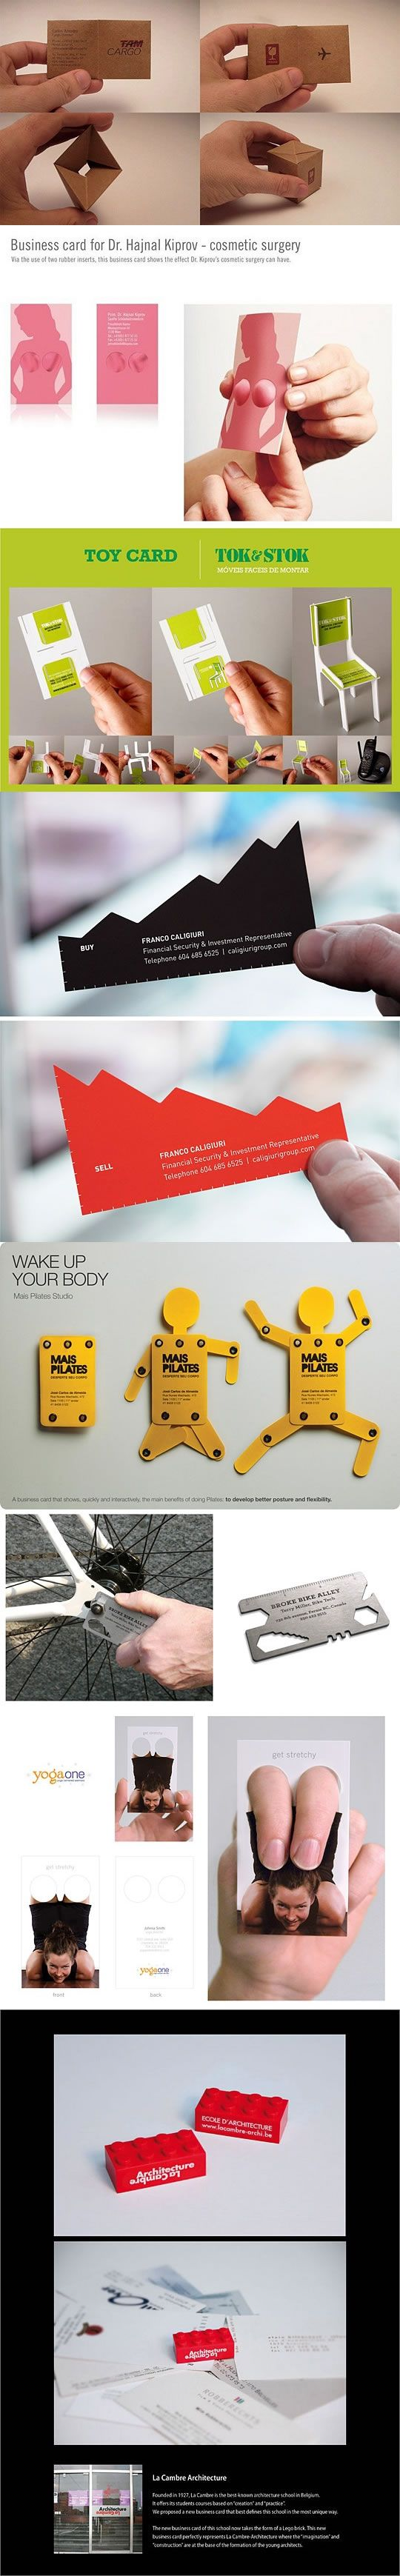 [Tarjetas de Visita Creativas]  creative business cards